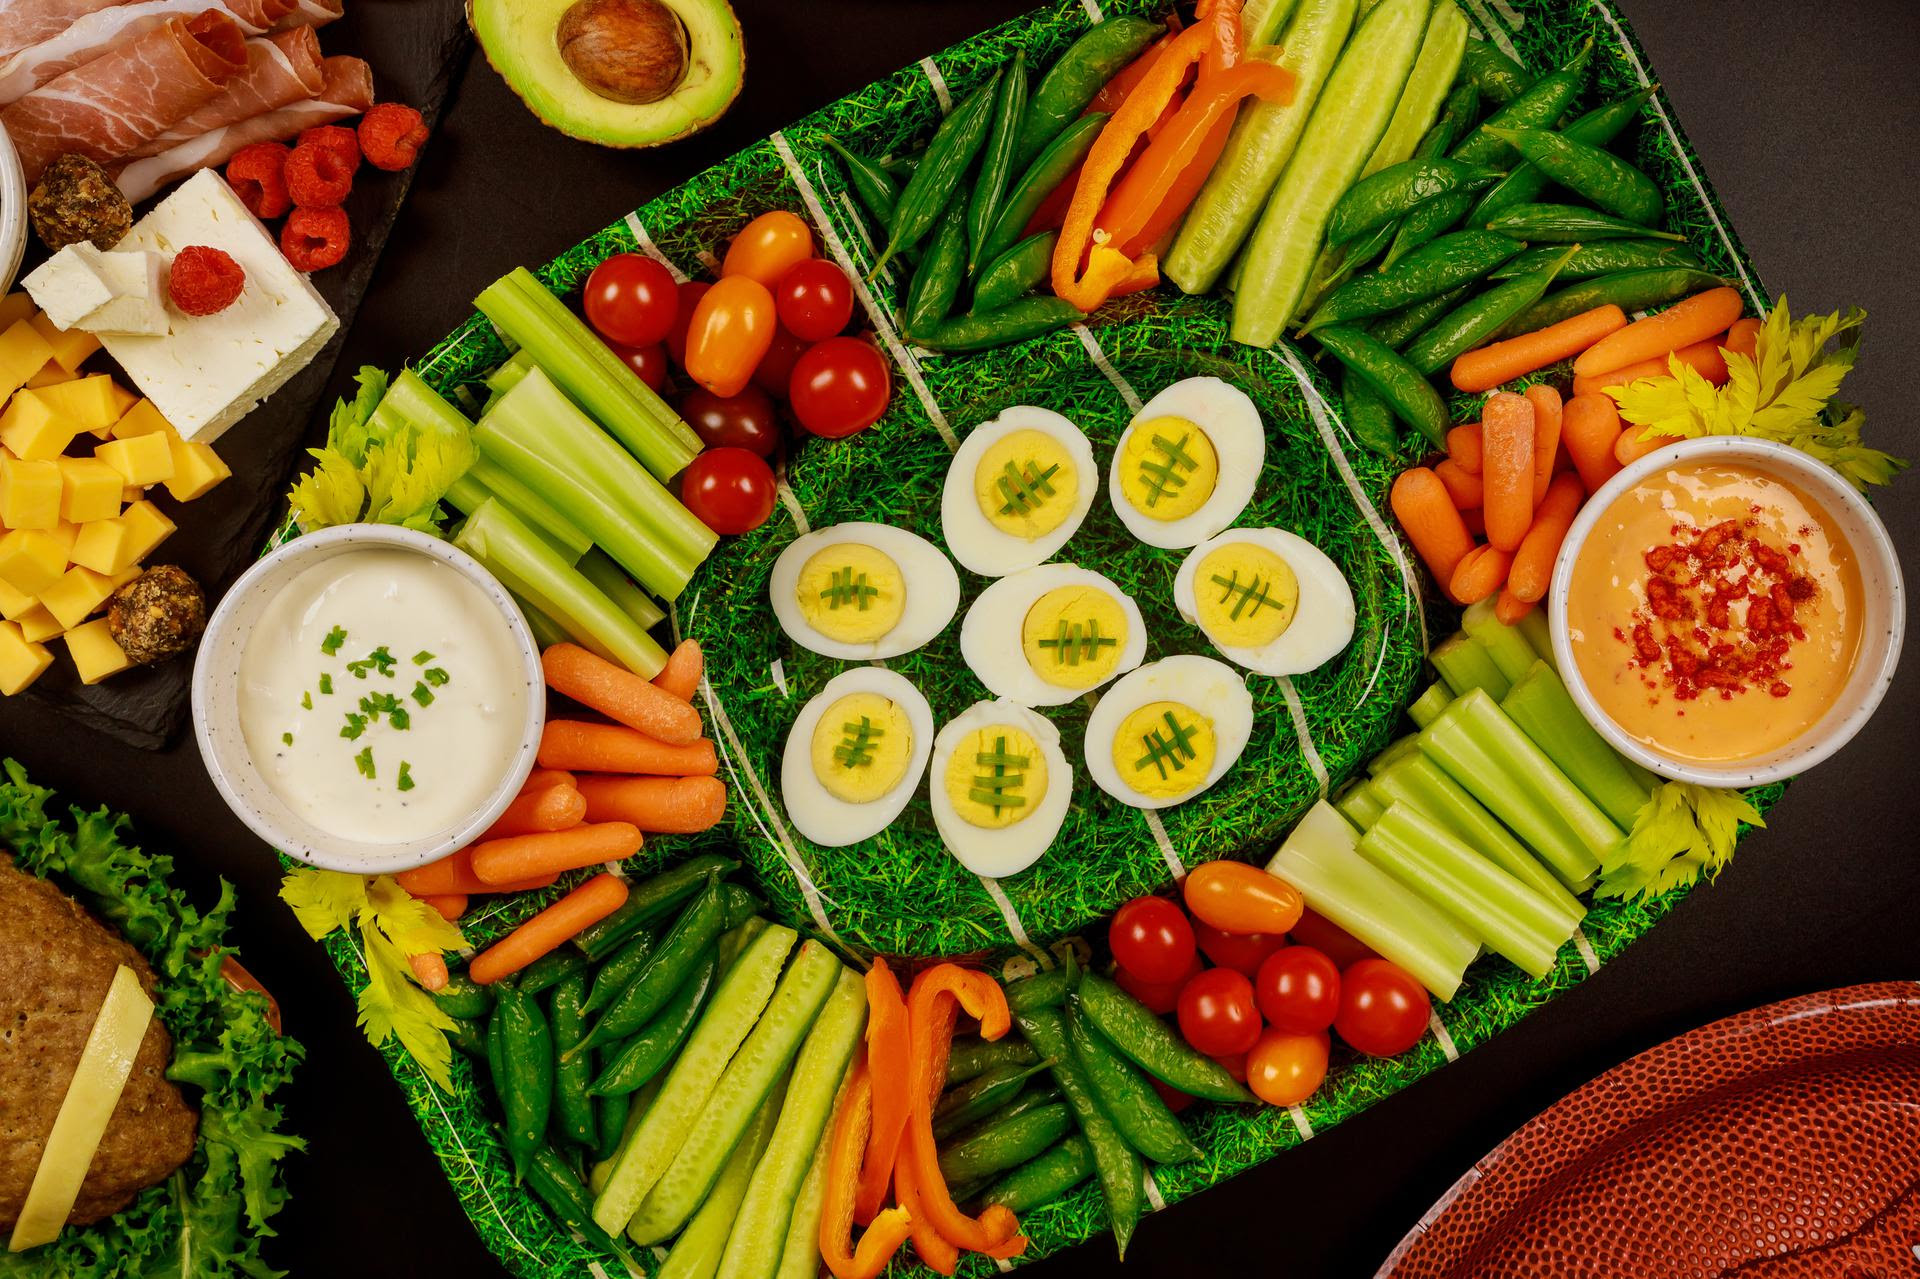 Platter of various vegetables, dips and deviled eggs